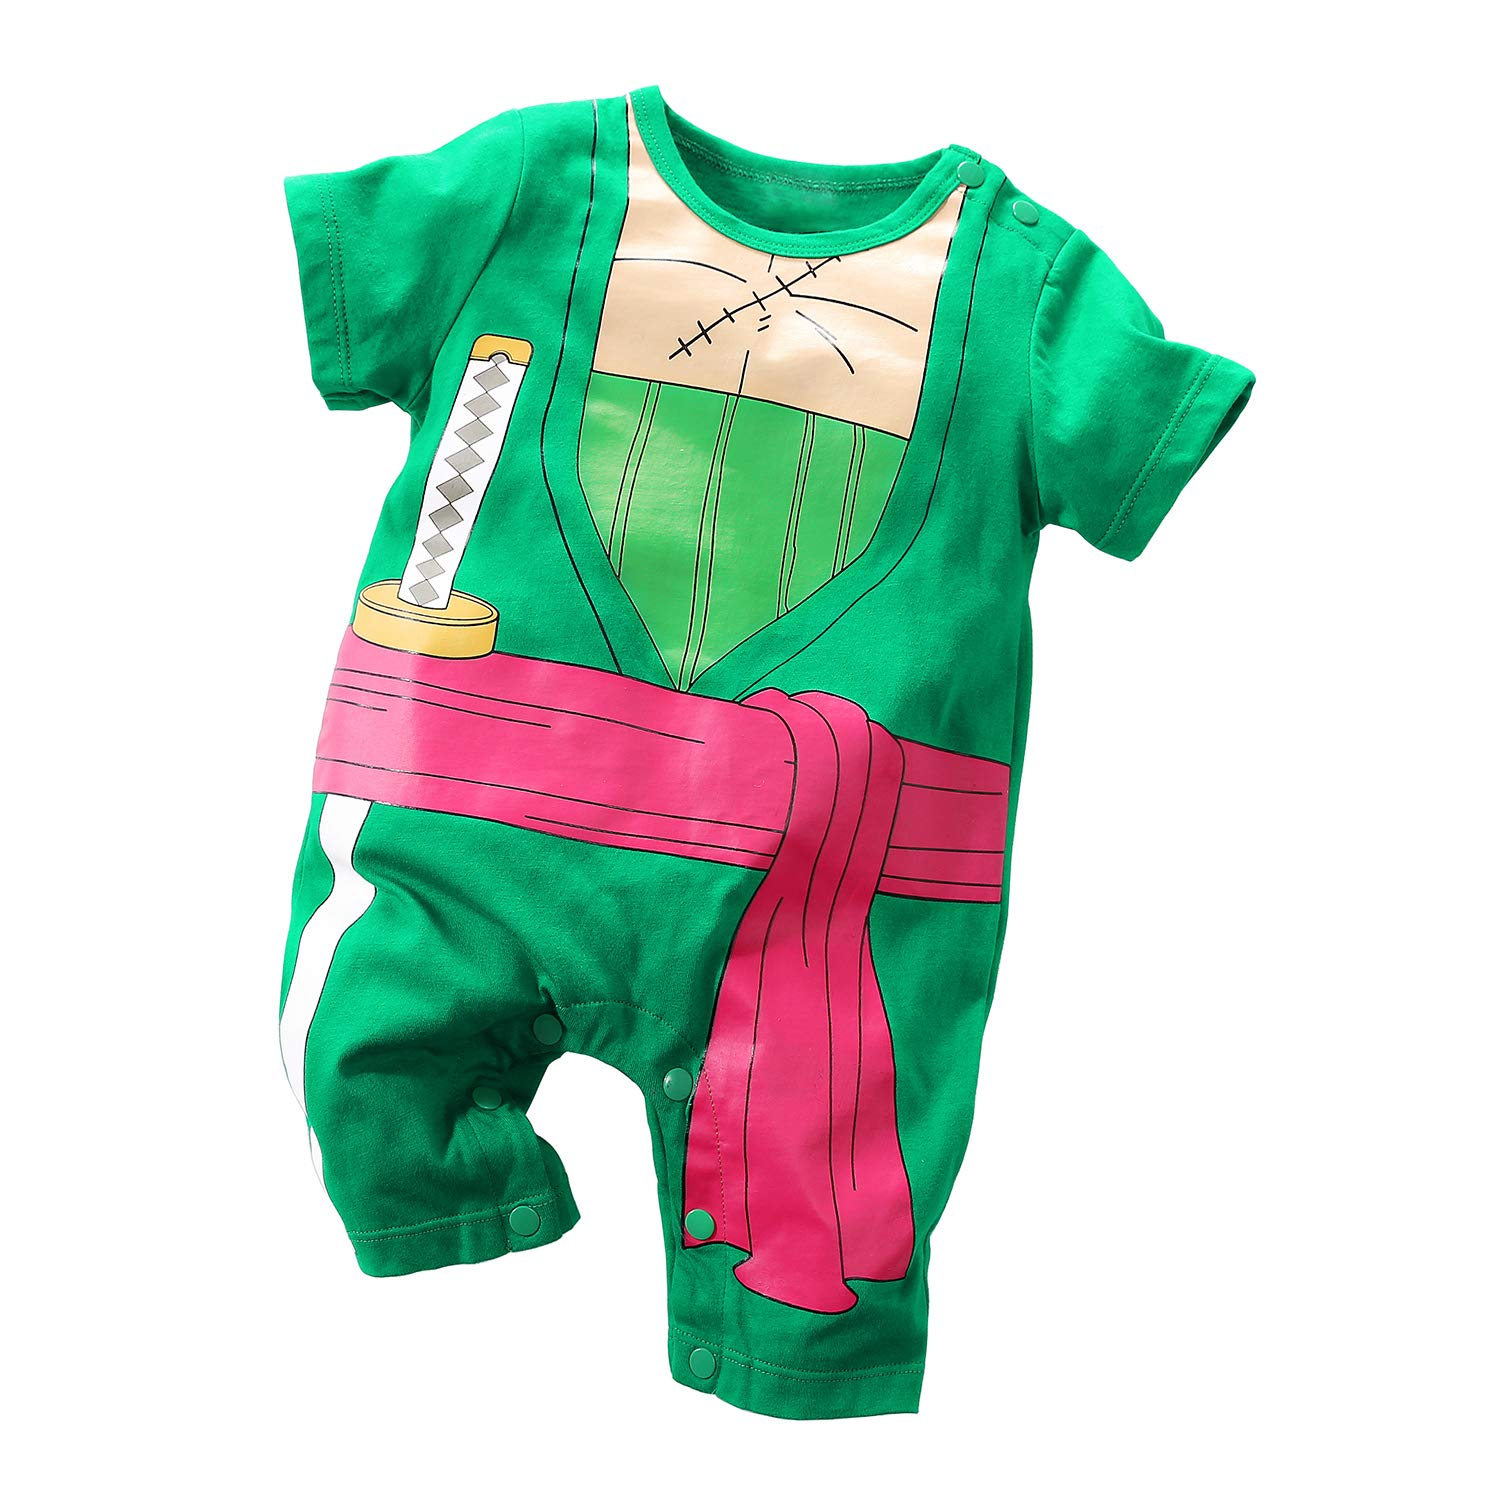 Yierying One Piece Luffy Baby Clothes Onesie Baby Rompers